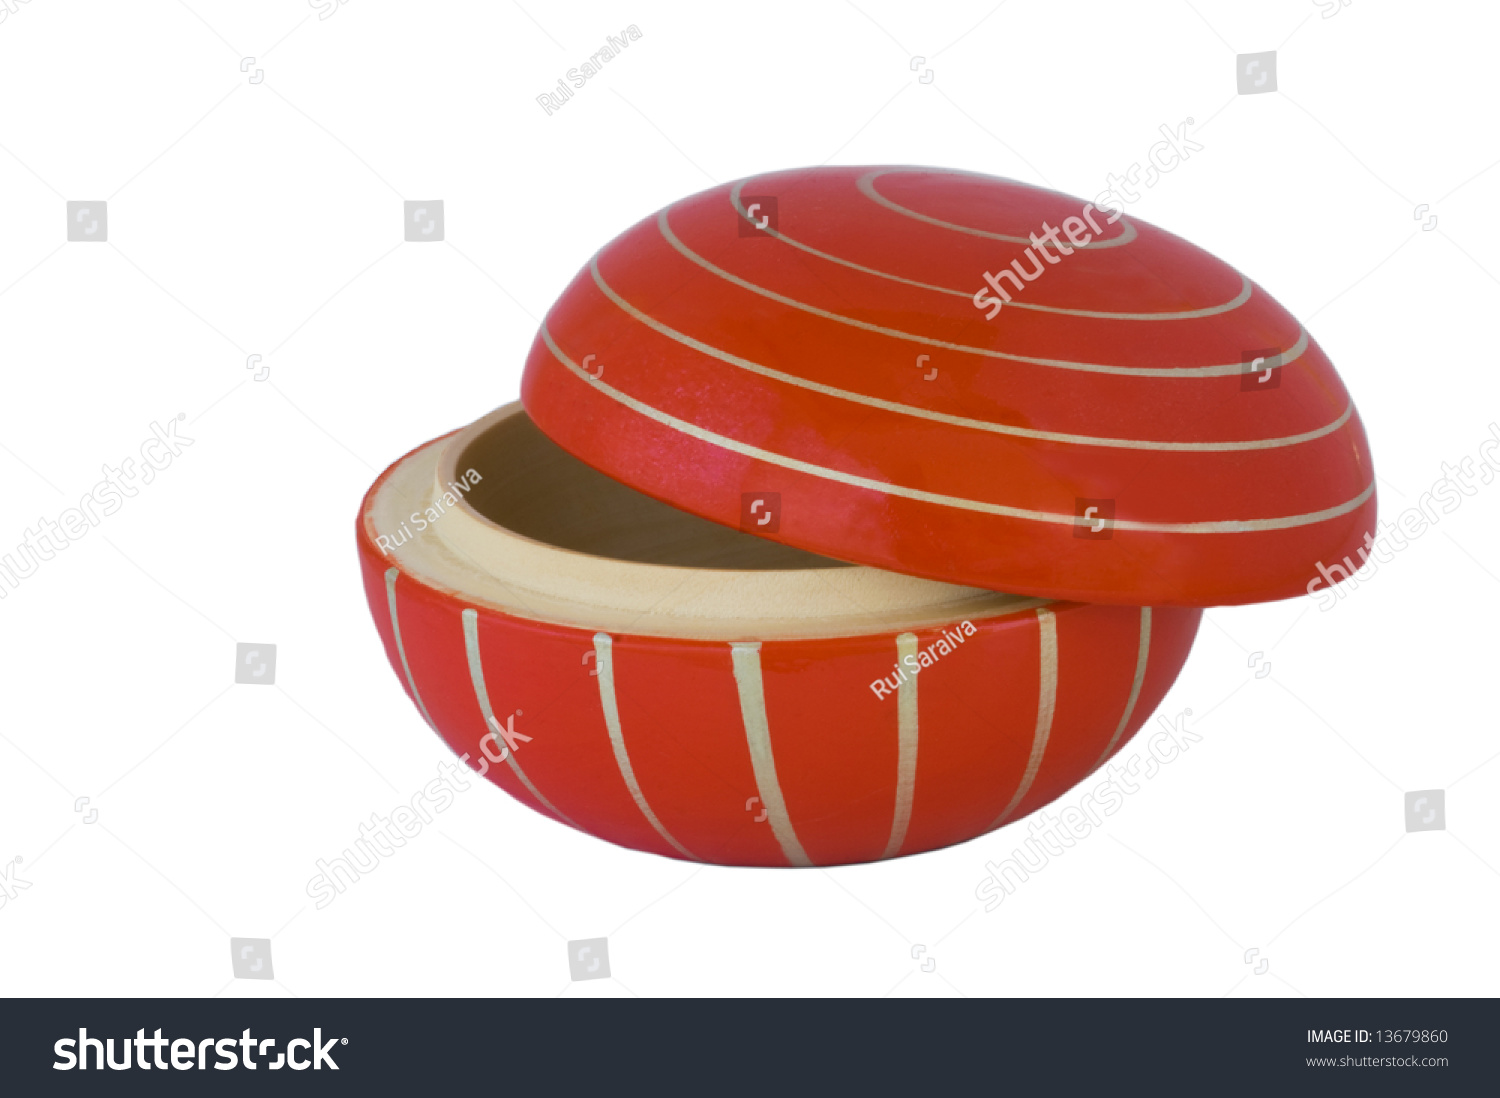 Red round wooden box stock photo 13679860 shutterstock for Circular wooden box